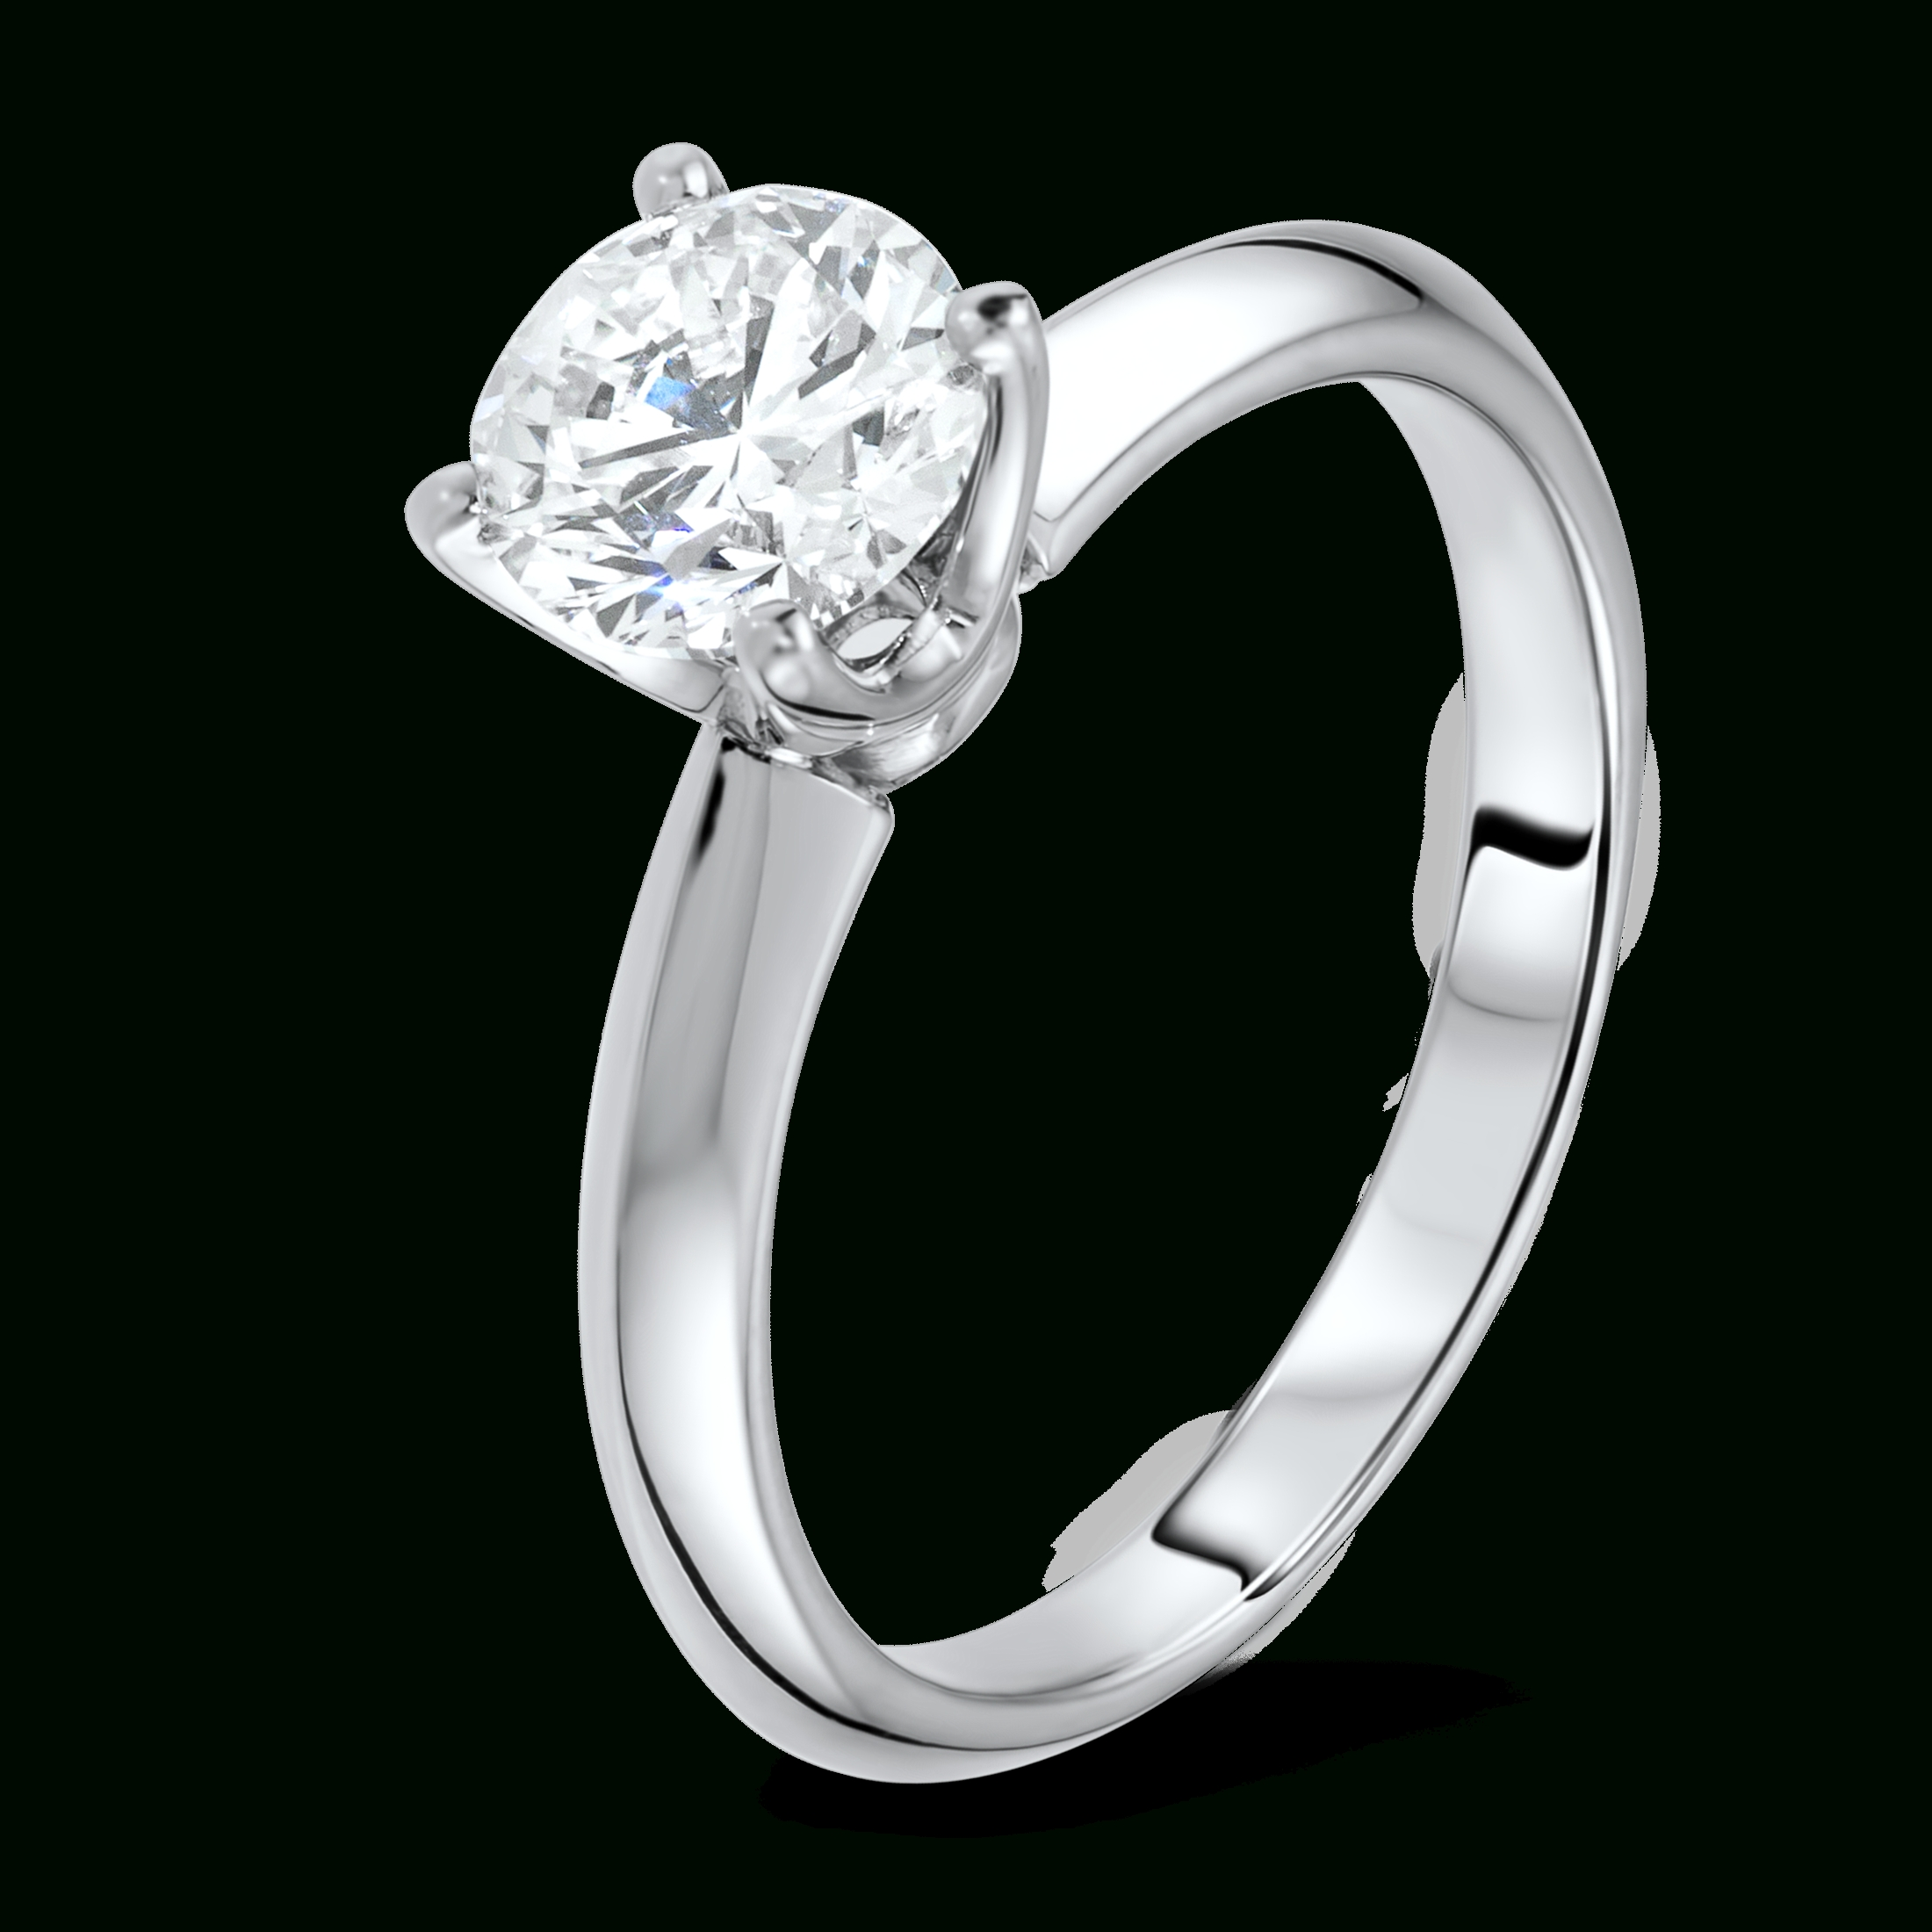 Diamond Ring In 18k White Gold – Diamondland Inside Engagement Rings 18k White Gold (View 11 of 15)